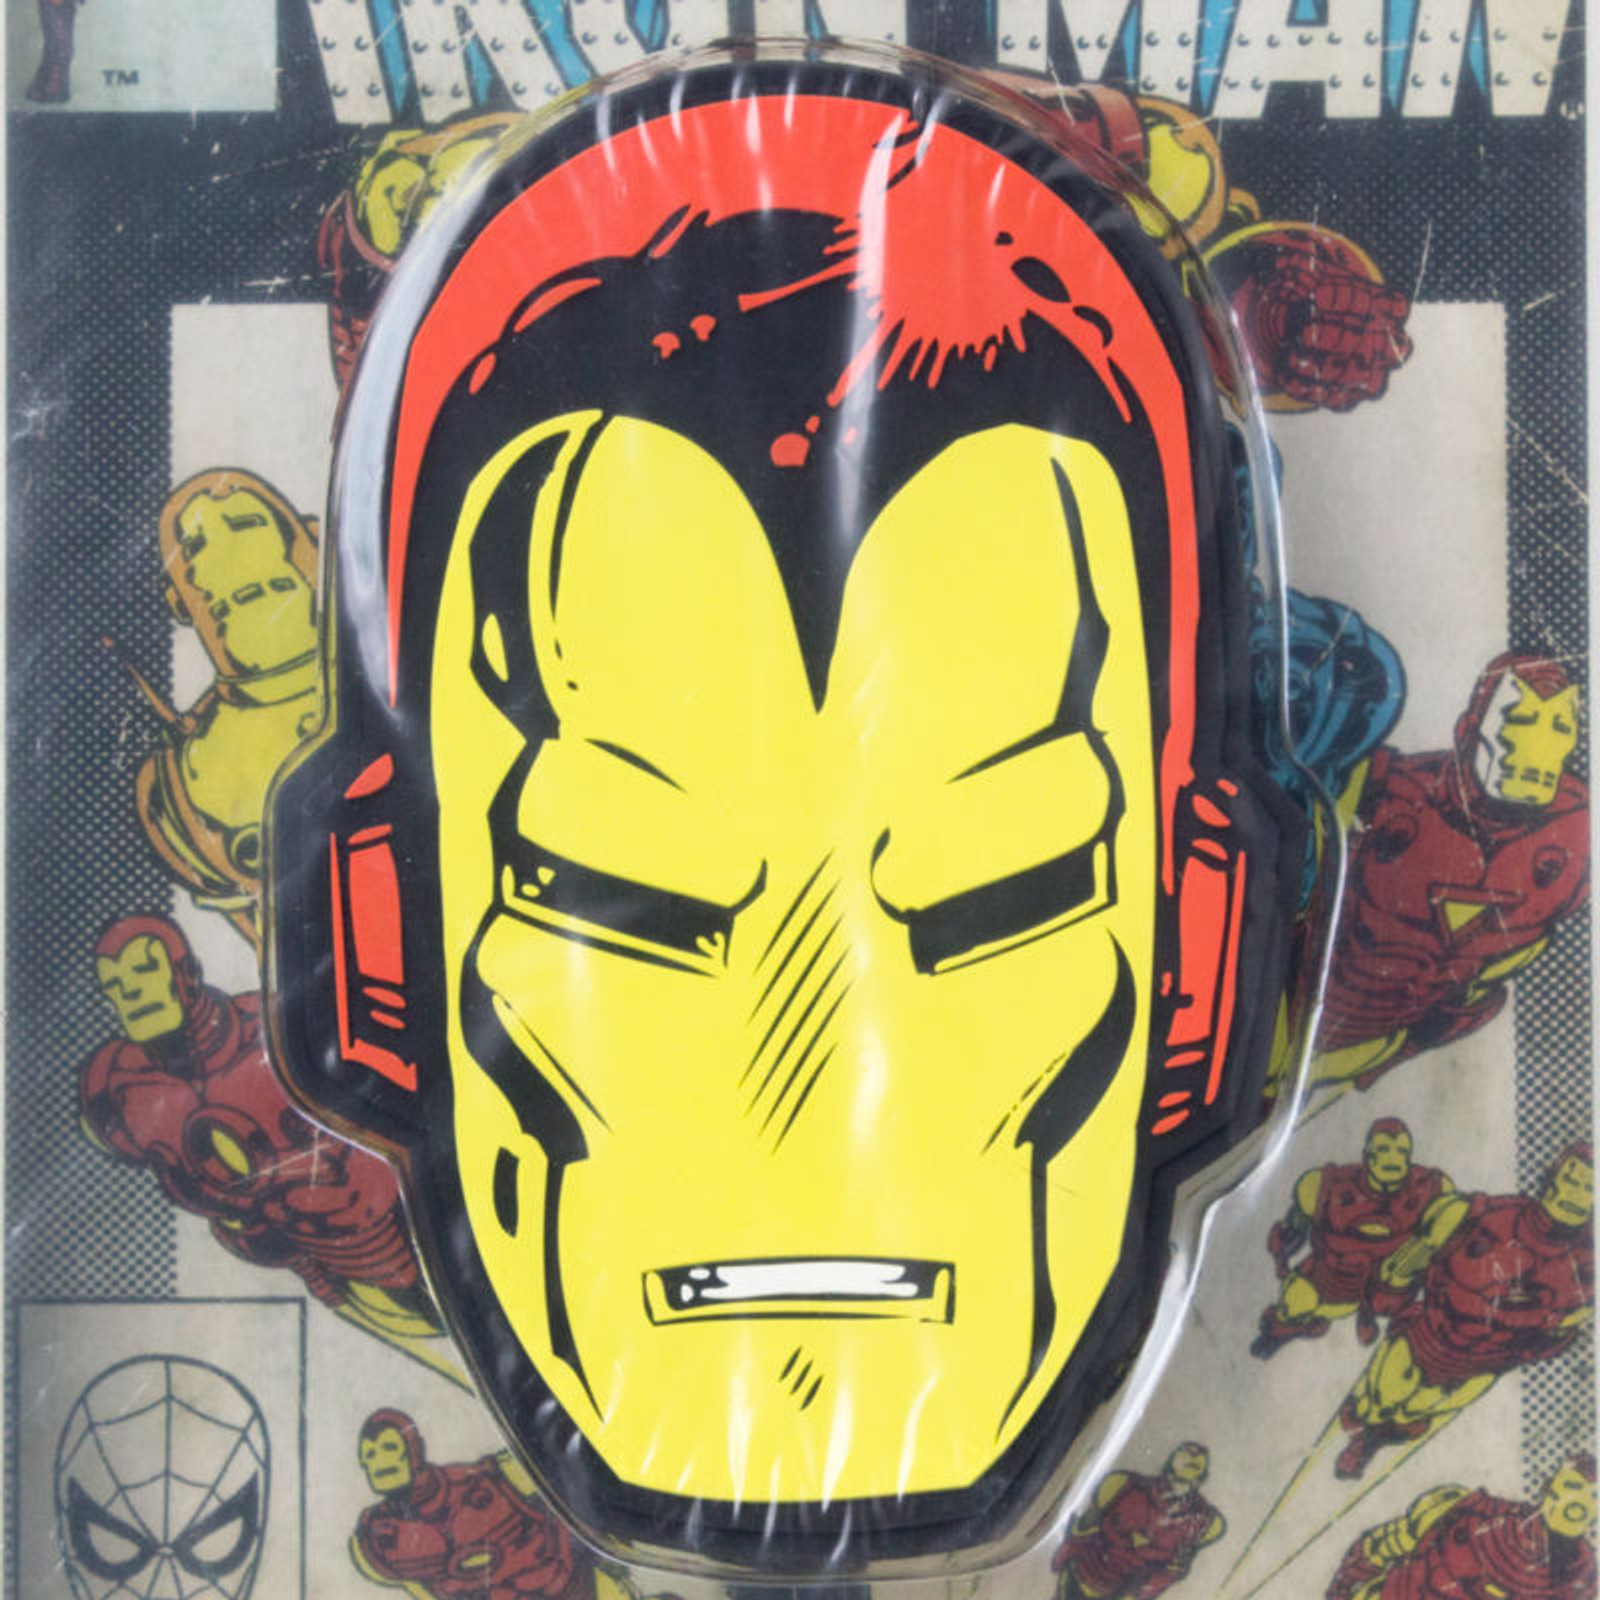 Marvel Rubber Magnet Iron Man Face Banpresto JAPAN ANIME COMICS